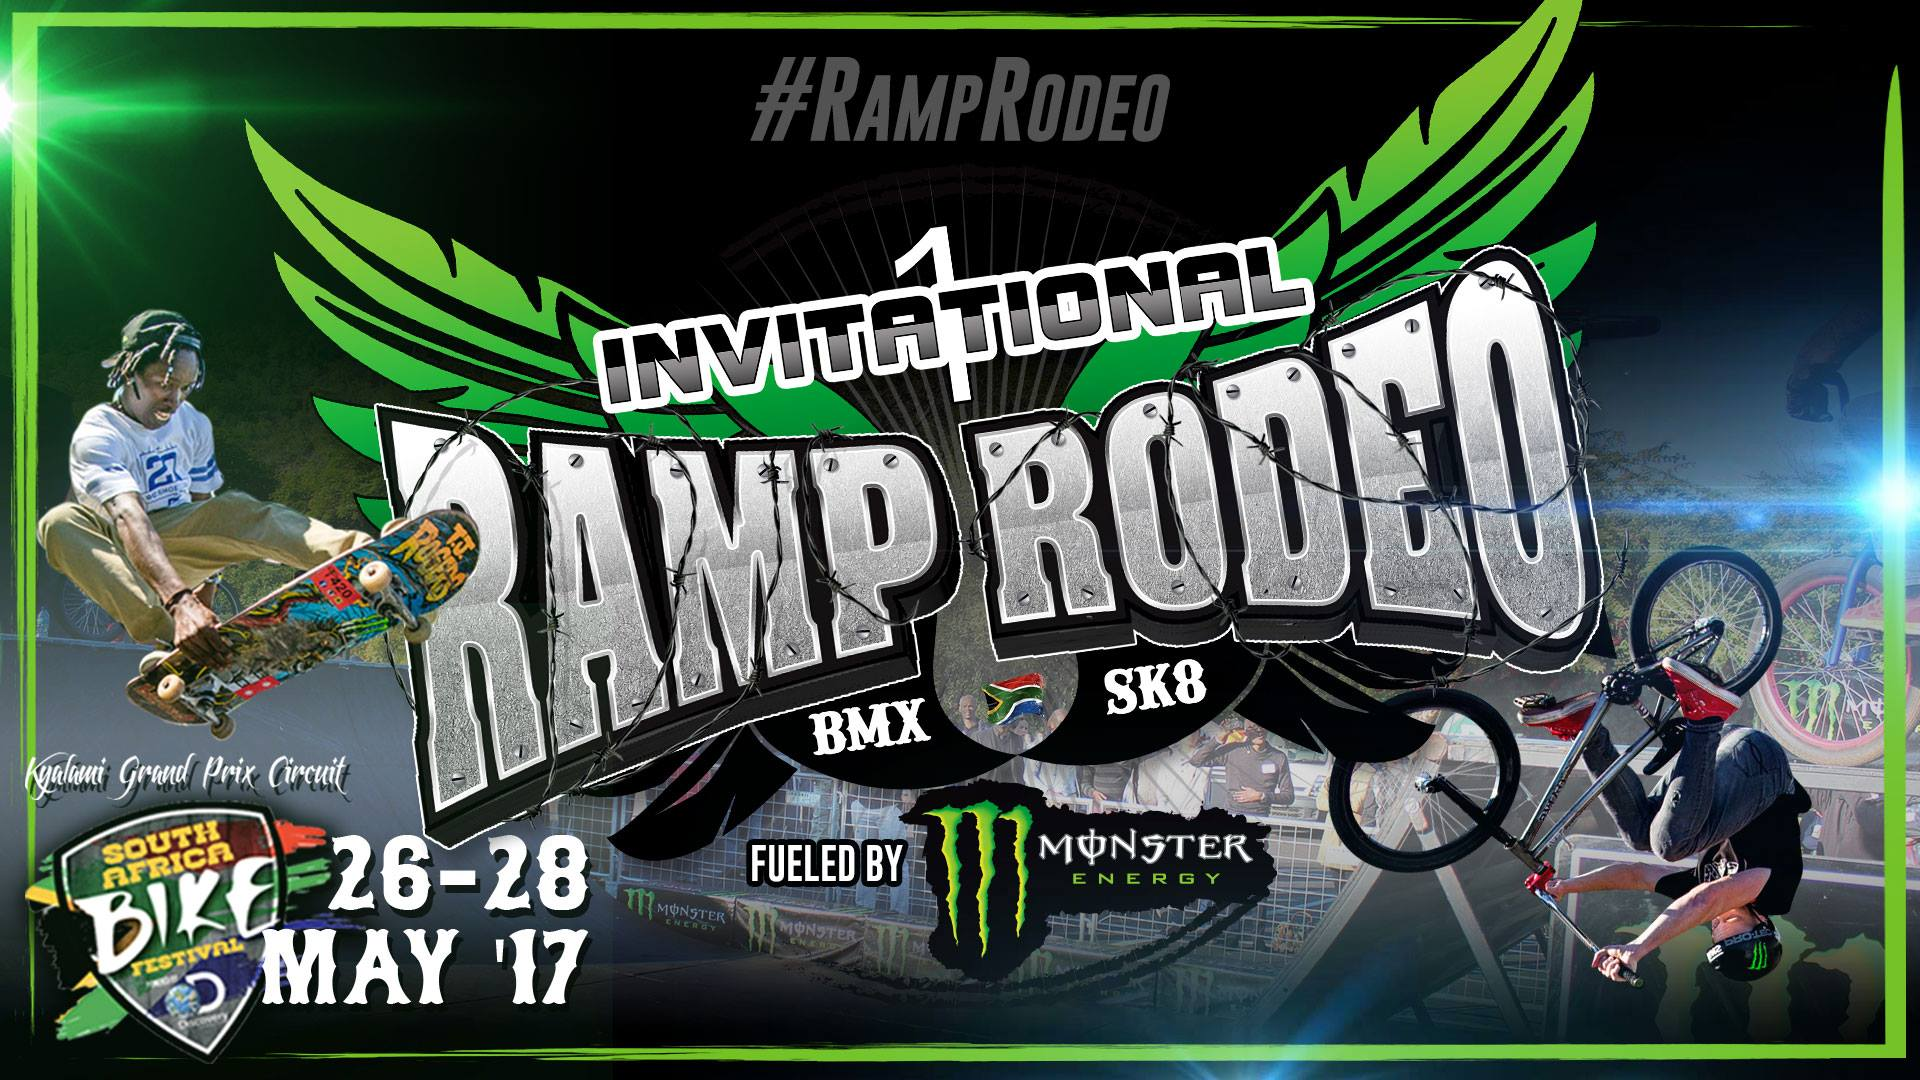 Ramp Rodeo BMX and Skate Invitational details